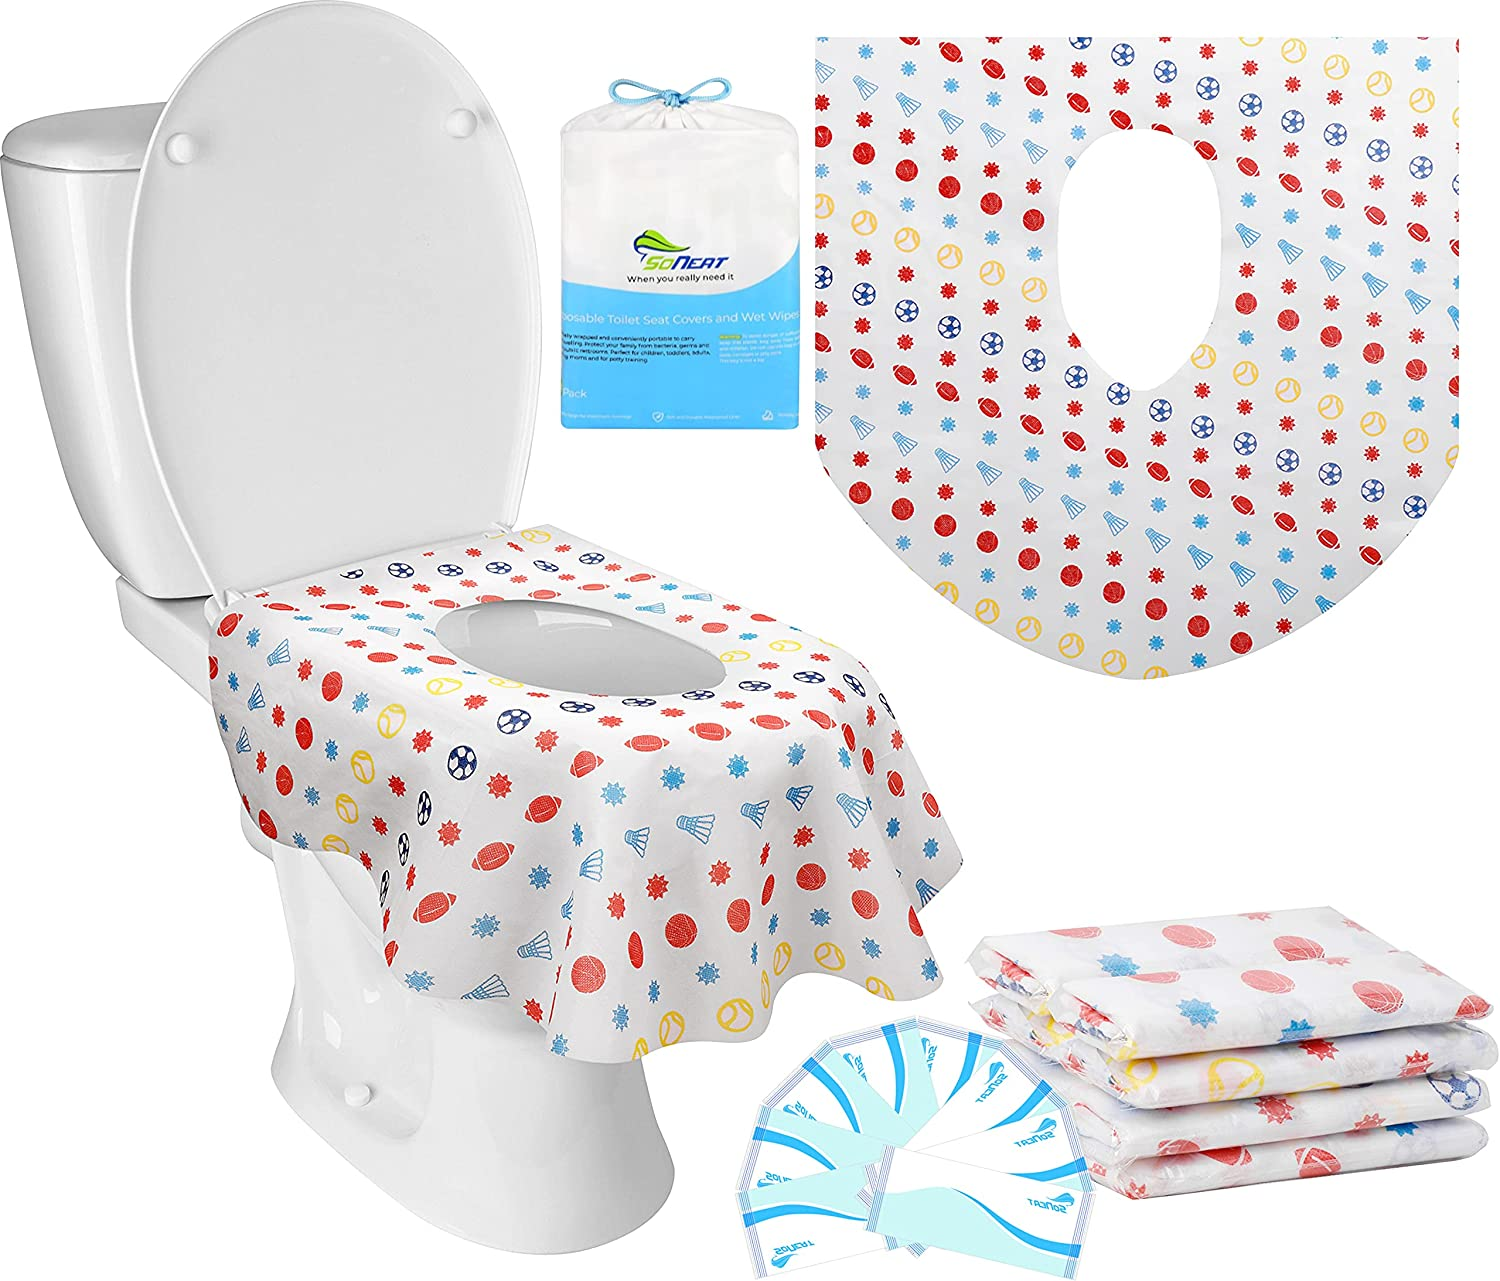 SoNeat Disposable toilet seat covers for kids and adults-Extra Large Coverage, Waterproof, Individually Wrapped for Travel, Toddlers Potty Training in School and Public Restrooms (Sports, 16)